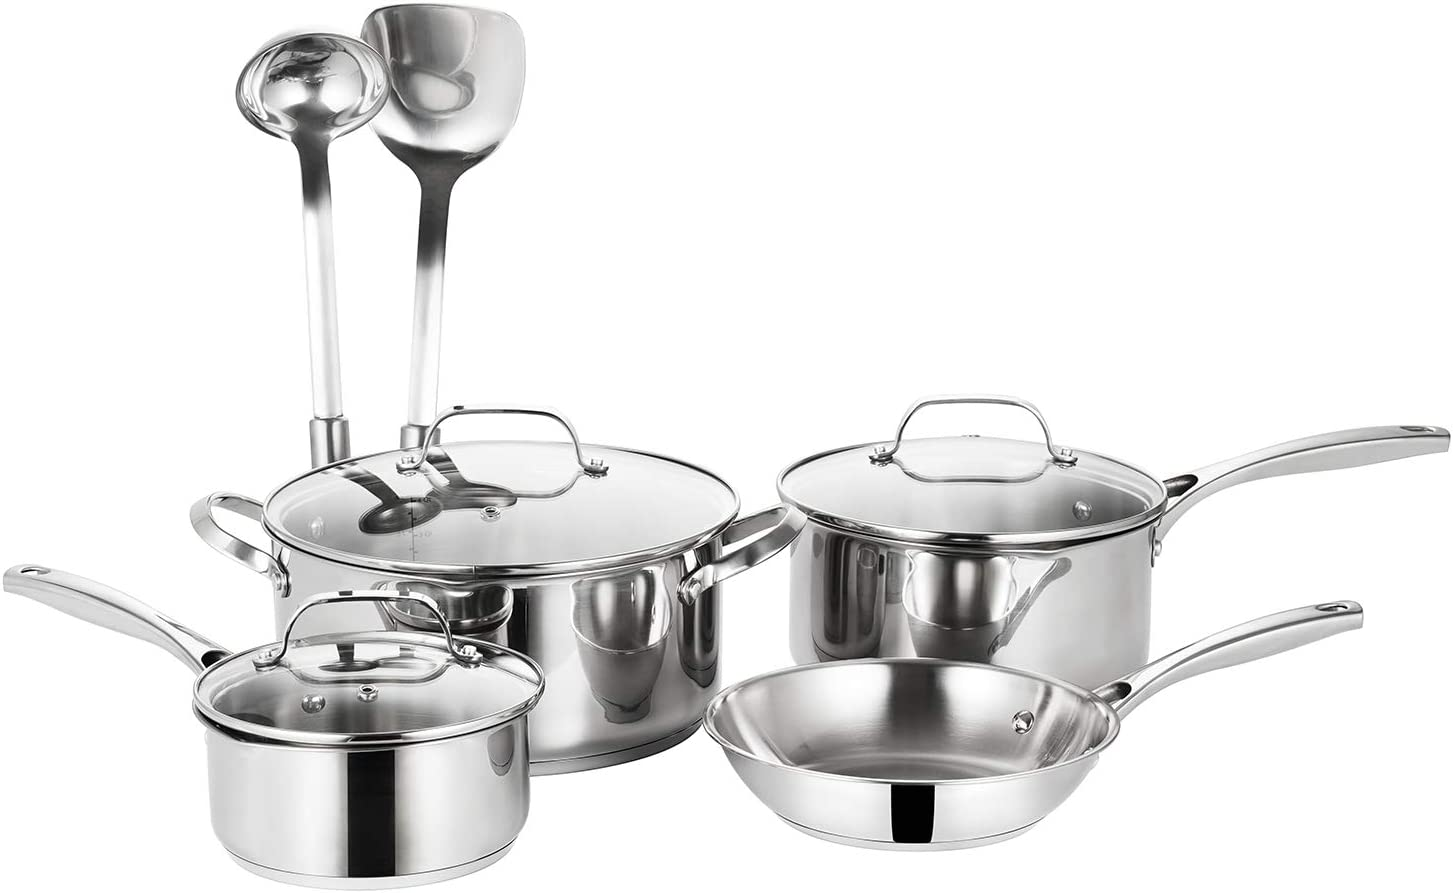 EPPMO 9-Piece SS304 Stainless Steel Cookware Set, Aluminum Fry Pans and Pots, Dishwasher &Induction Safe